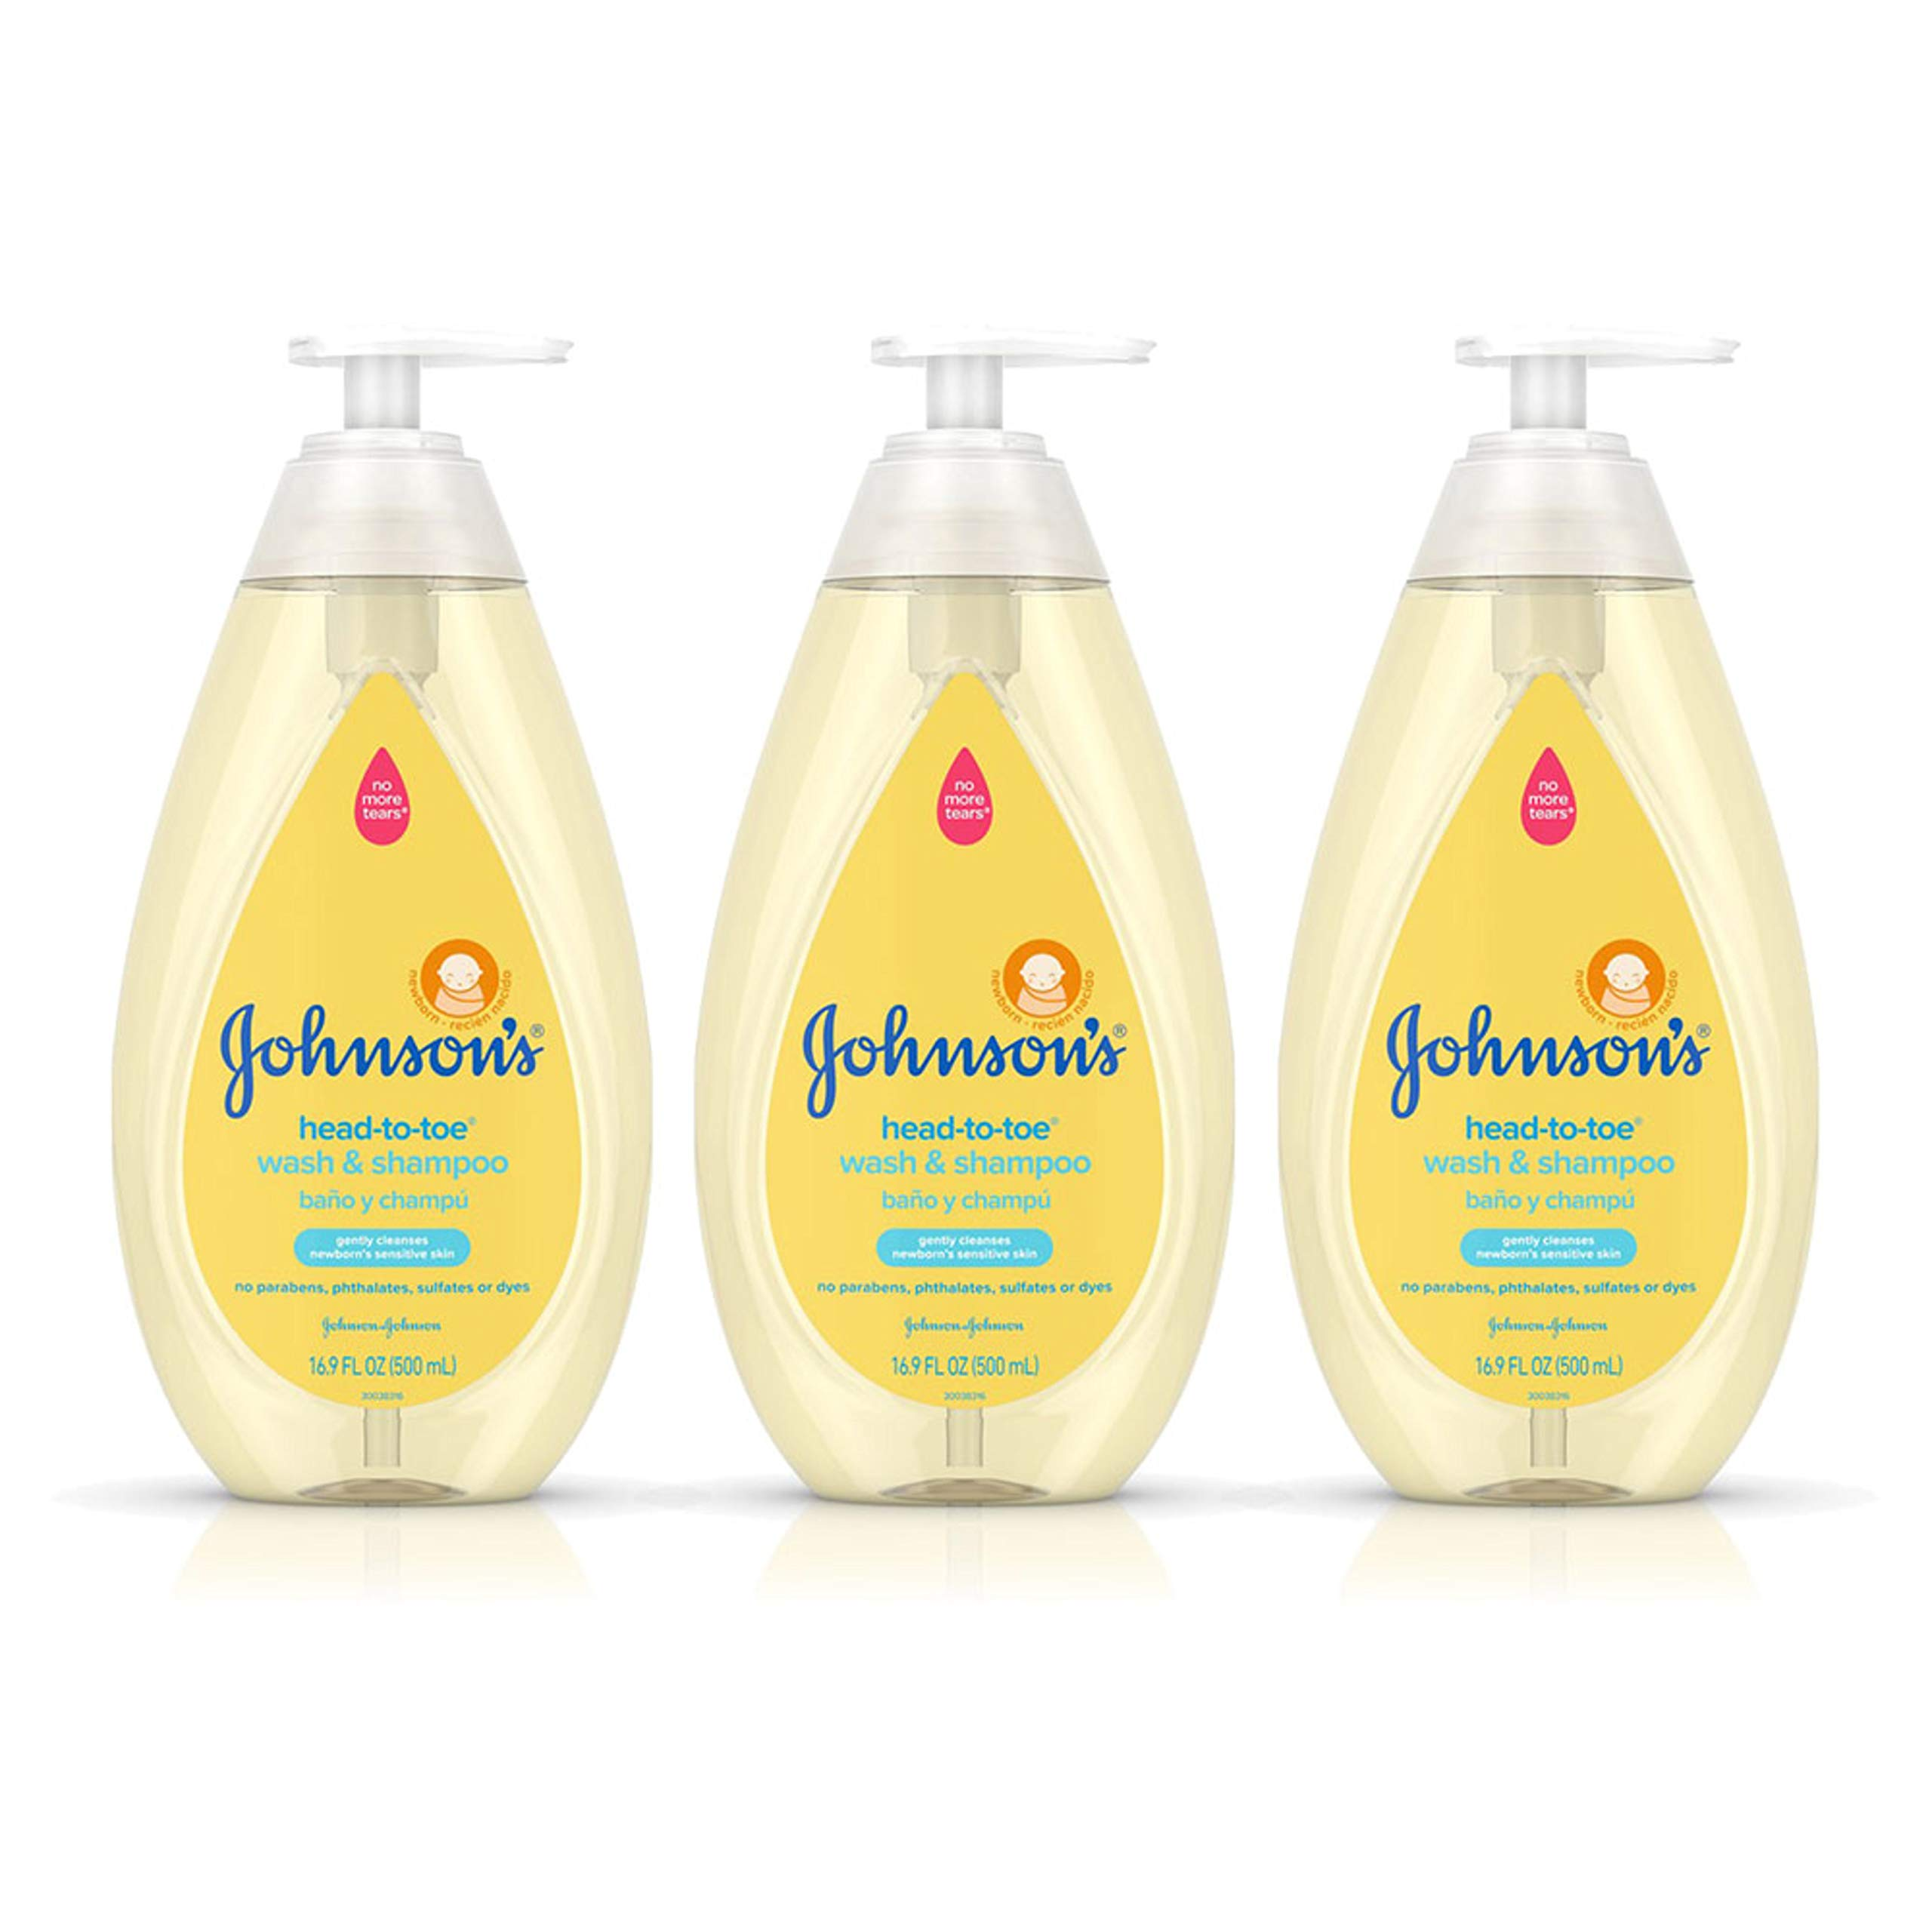 Johnson's Head-To-Toe Gentle Baby Wash & Shampoo, Tear-Free, Sulfate-Free & Hypoallergenic Wash for Baby's Sensitive Skin & Hair, 16.9 fl. Oz (Pack of 3)